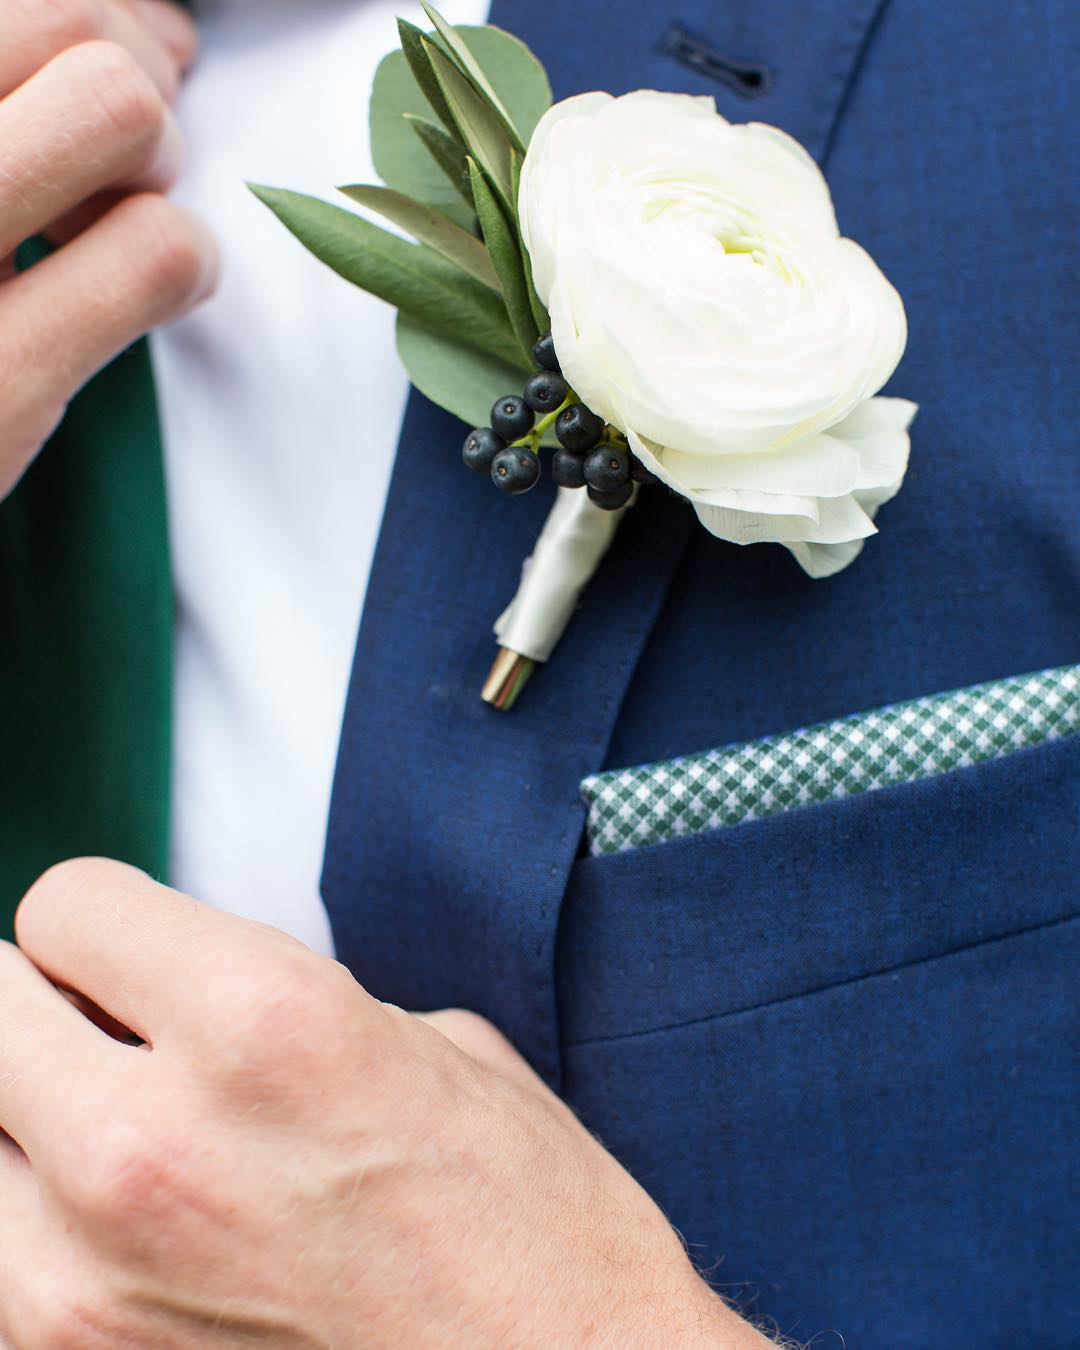 {man decor} photo | @erikafollansbee  #manflower #boutonniere #manbling #accessory #lookingsharp #gettingready #ranunculus #simple #lotusfloraldesigns #weddingflorist #nhwedding